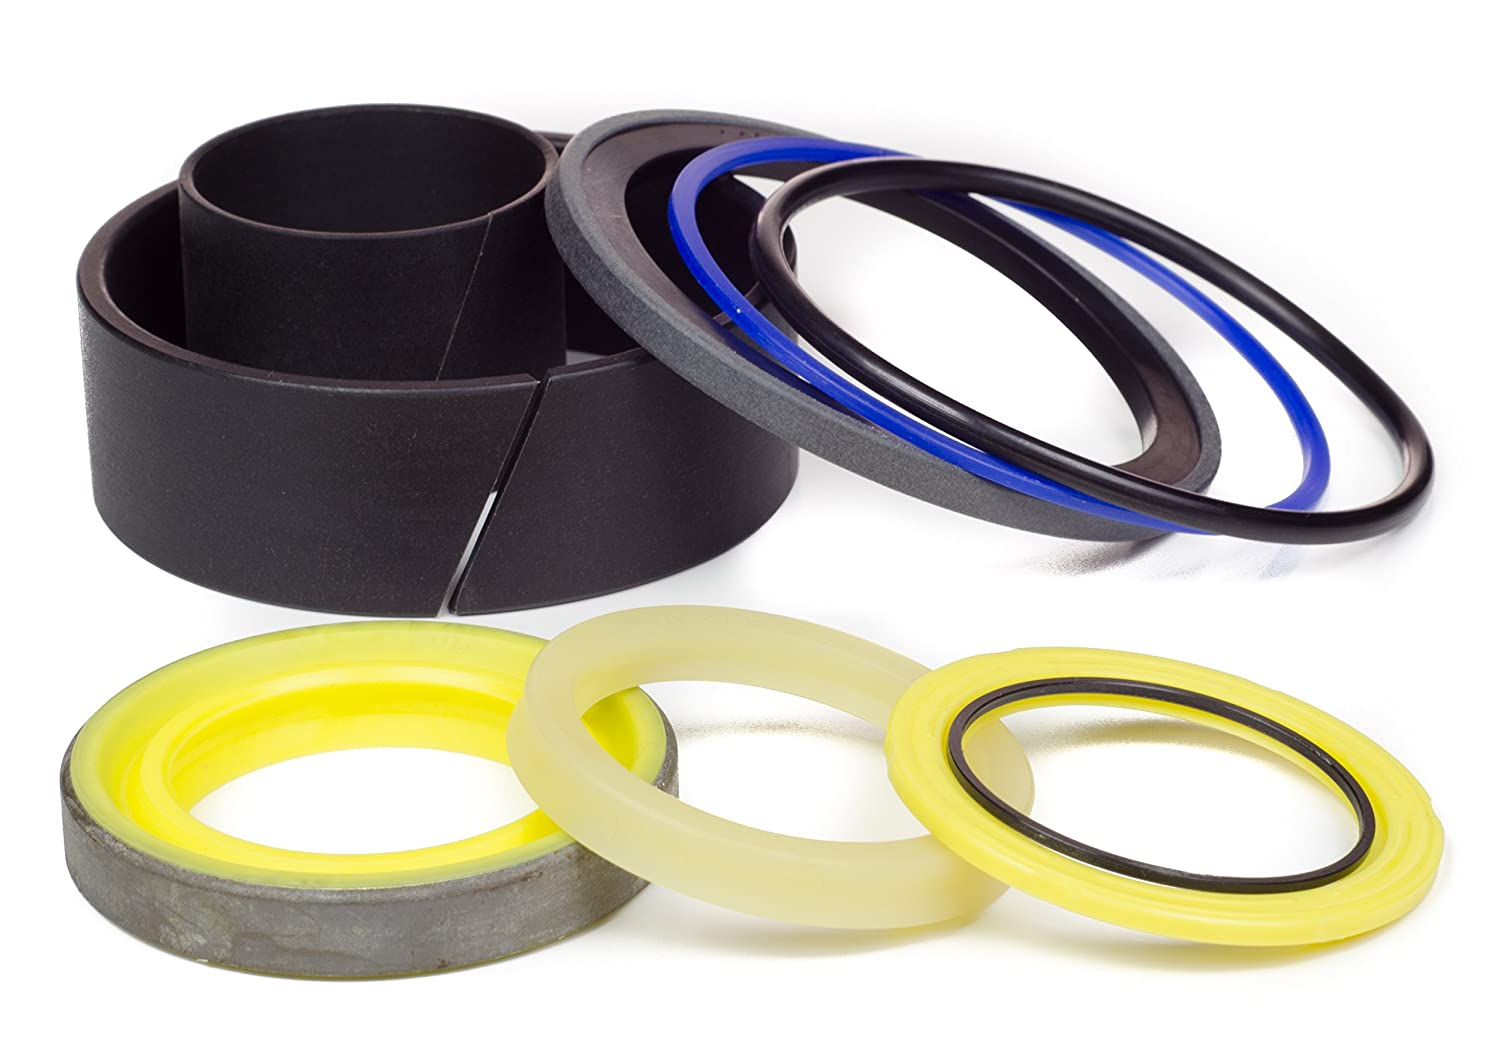 CAT Caterpillar 8T1435 Aftermarket Hydraulic Cylinder Seal Kit by Kit King USA